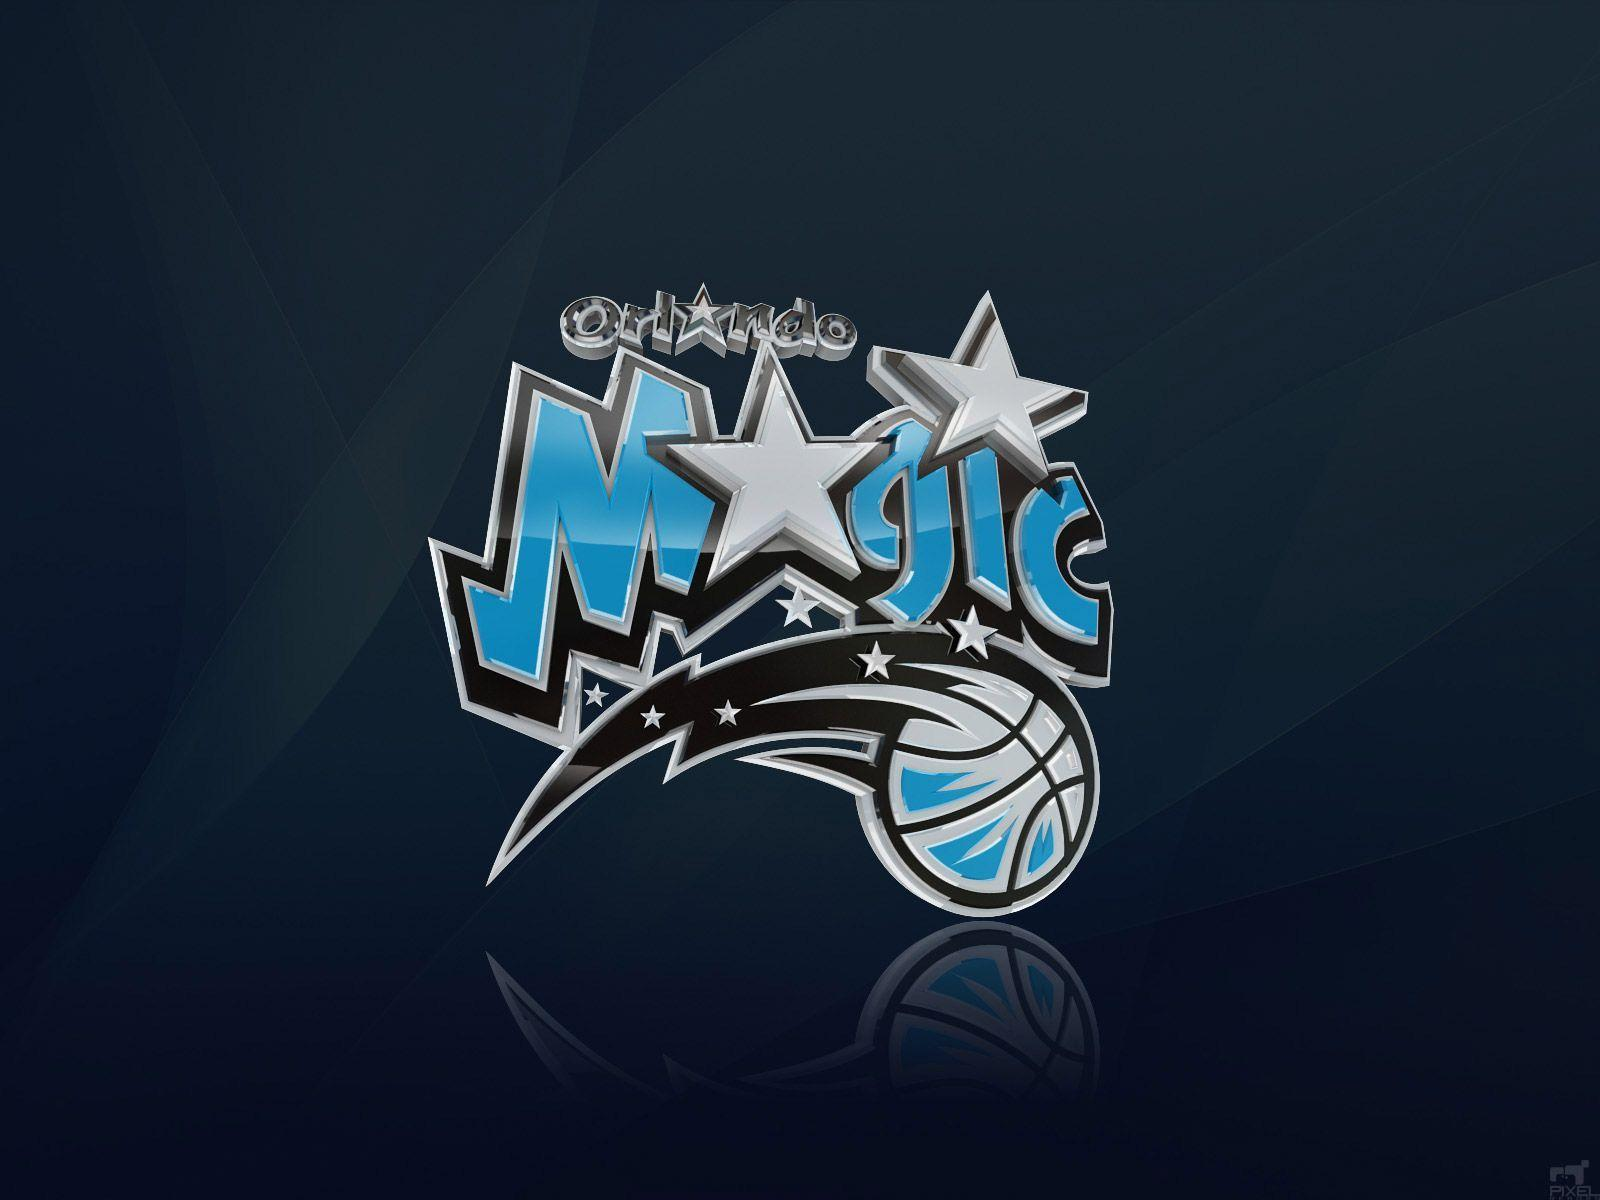 Orlando Magic Wallpapers at BasketWallpapers